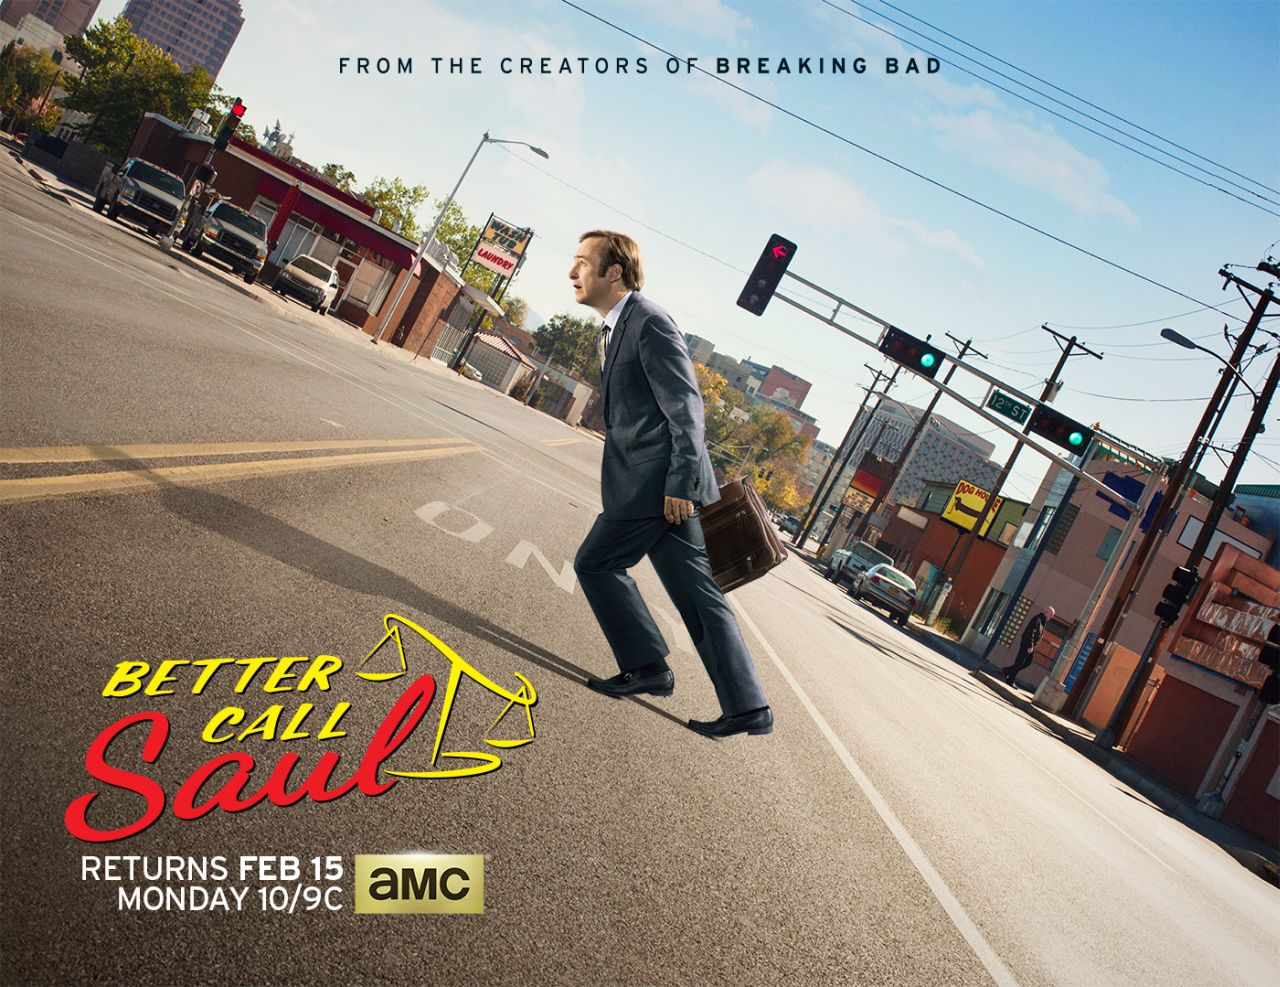 Better Call Saul Season 3 Episode 3 480p WEB-DL 150MB